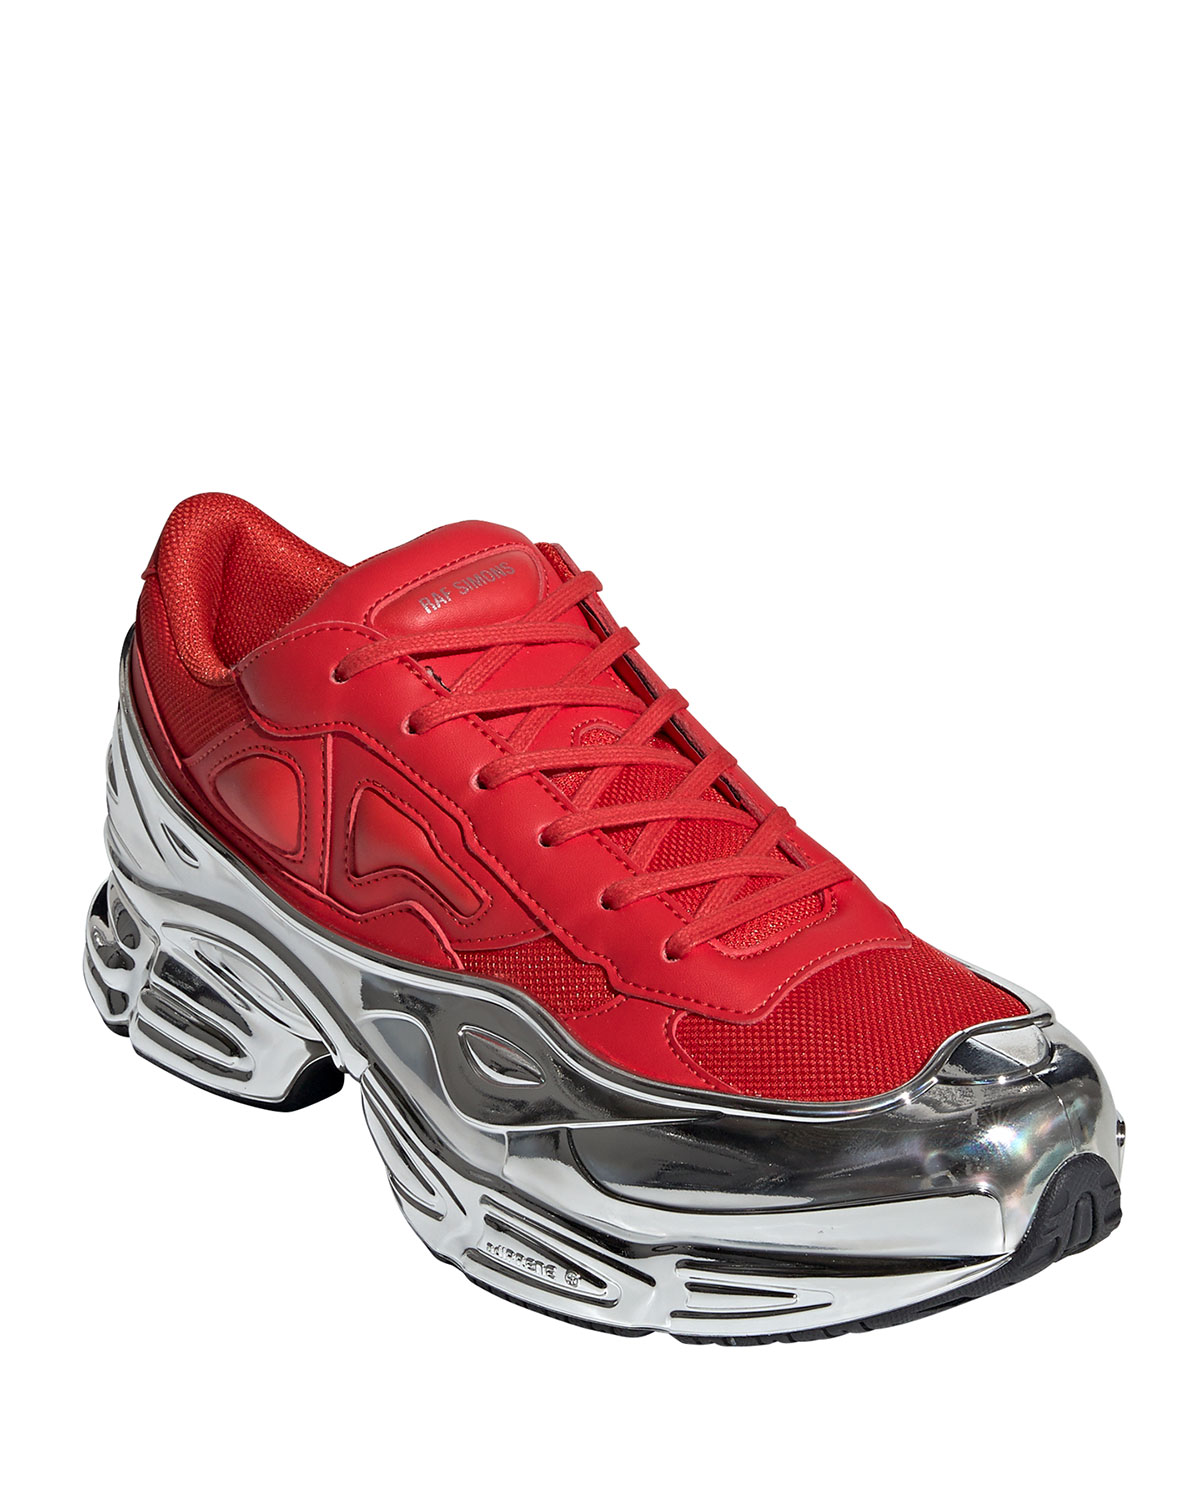 Adidas By Raf Simons Sneakers MEN'S OZWEEGO EXTRA-CHUNKY METALLIC DAD SNEAKERS